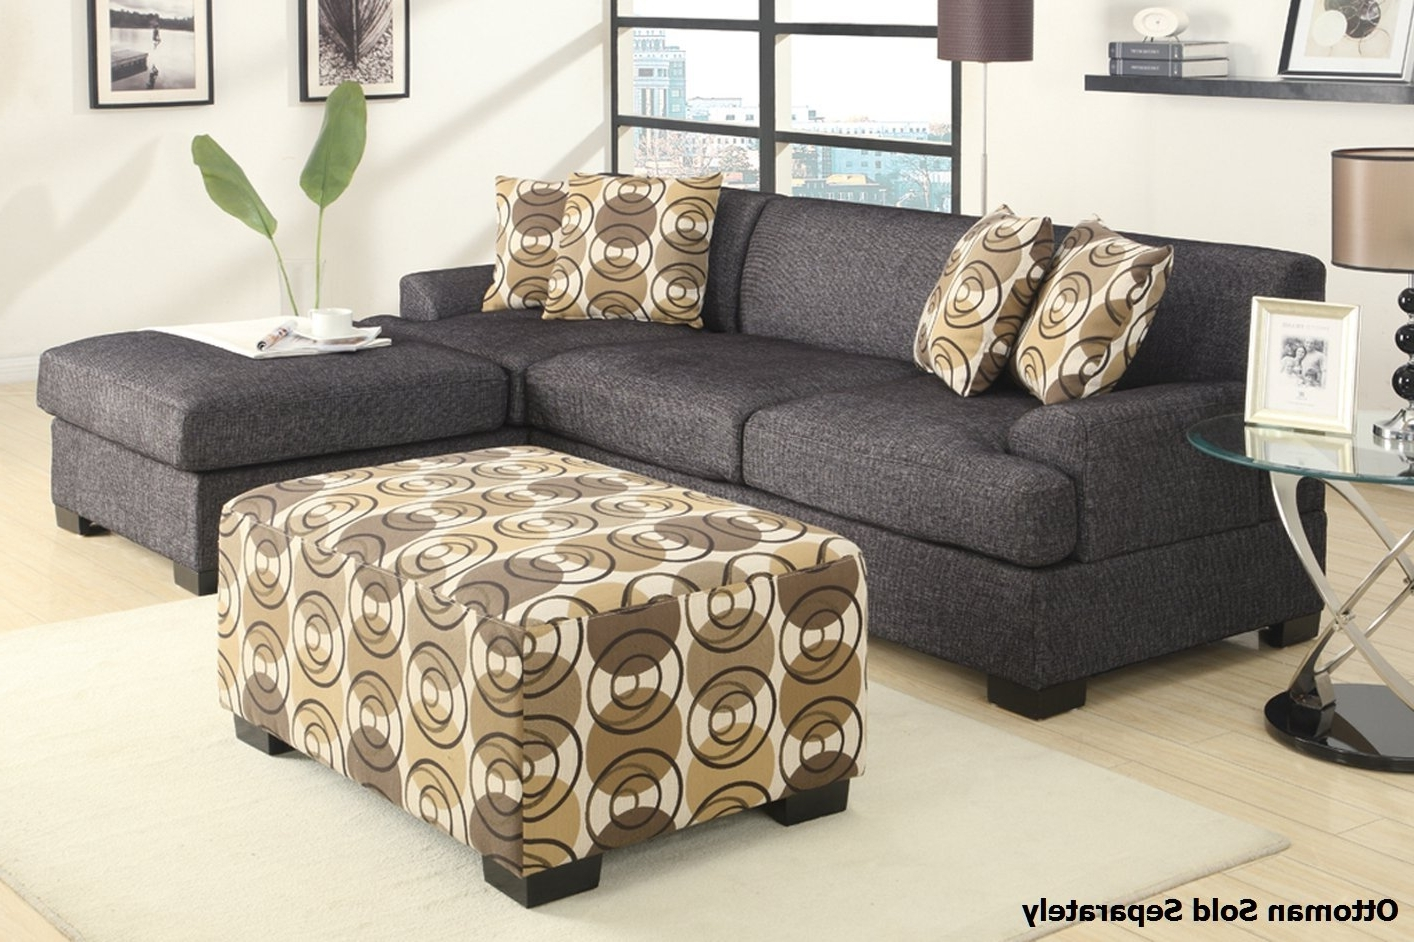 Well-liked Montreal Ii Grey Fabric Sectional Sofa - Steal-A-Sofa Furniture throughout Montreal Sectional Sofas